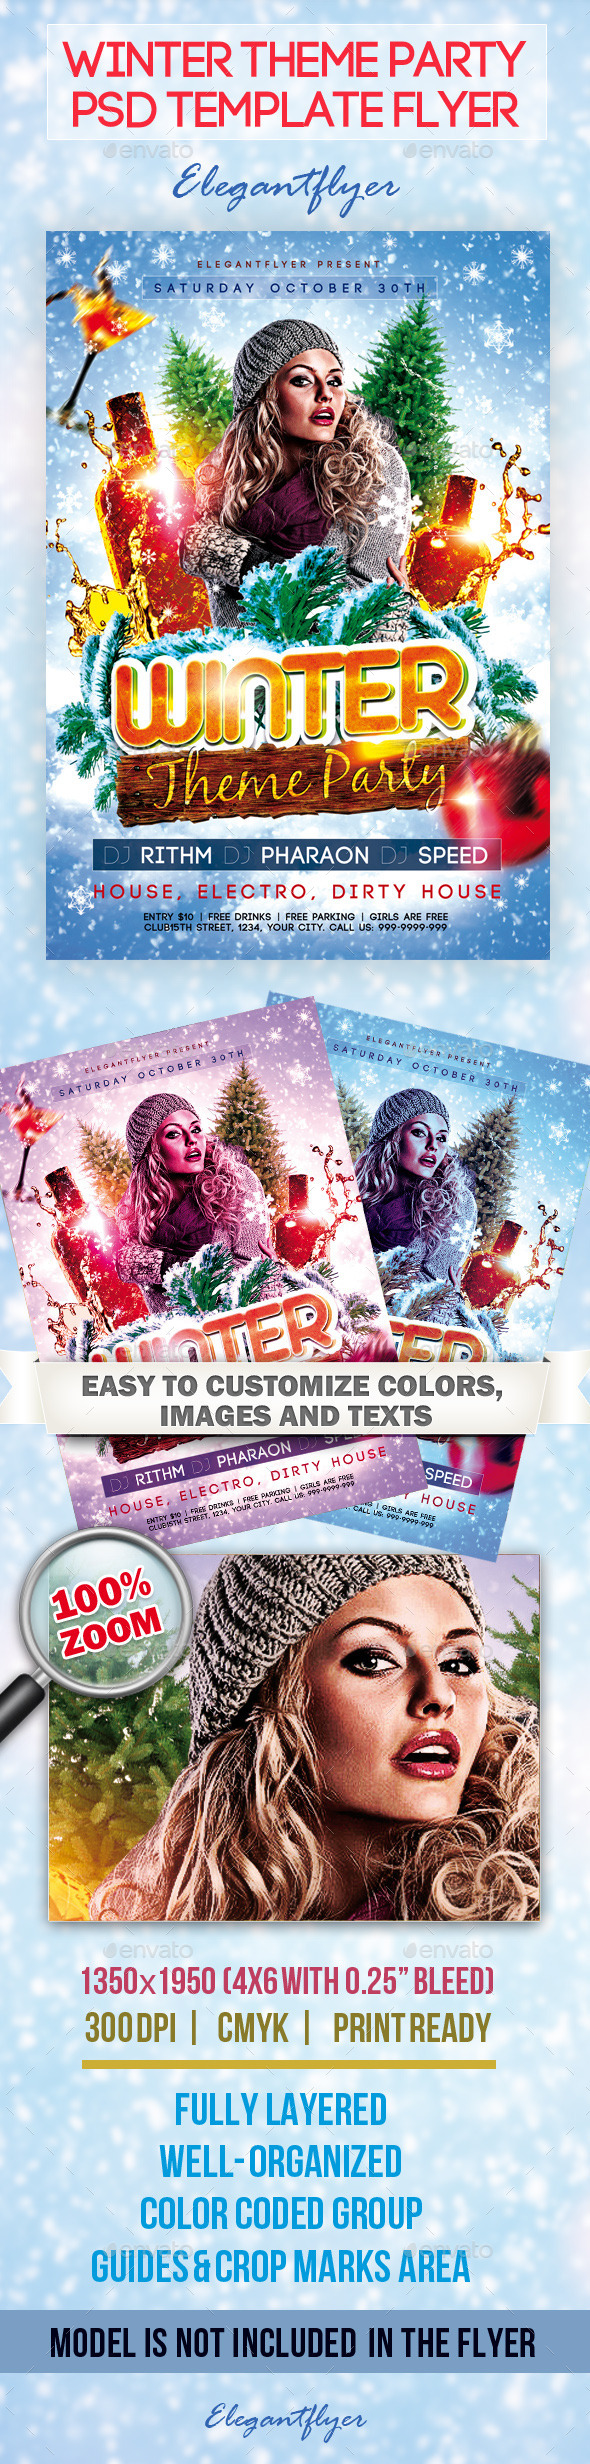 GraphicRiver Winter Theme Party Flyer PSD Template 9788651